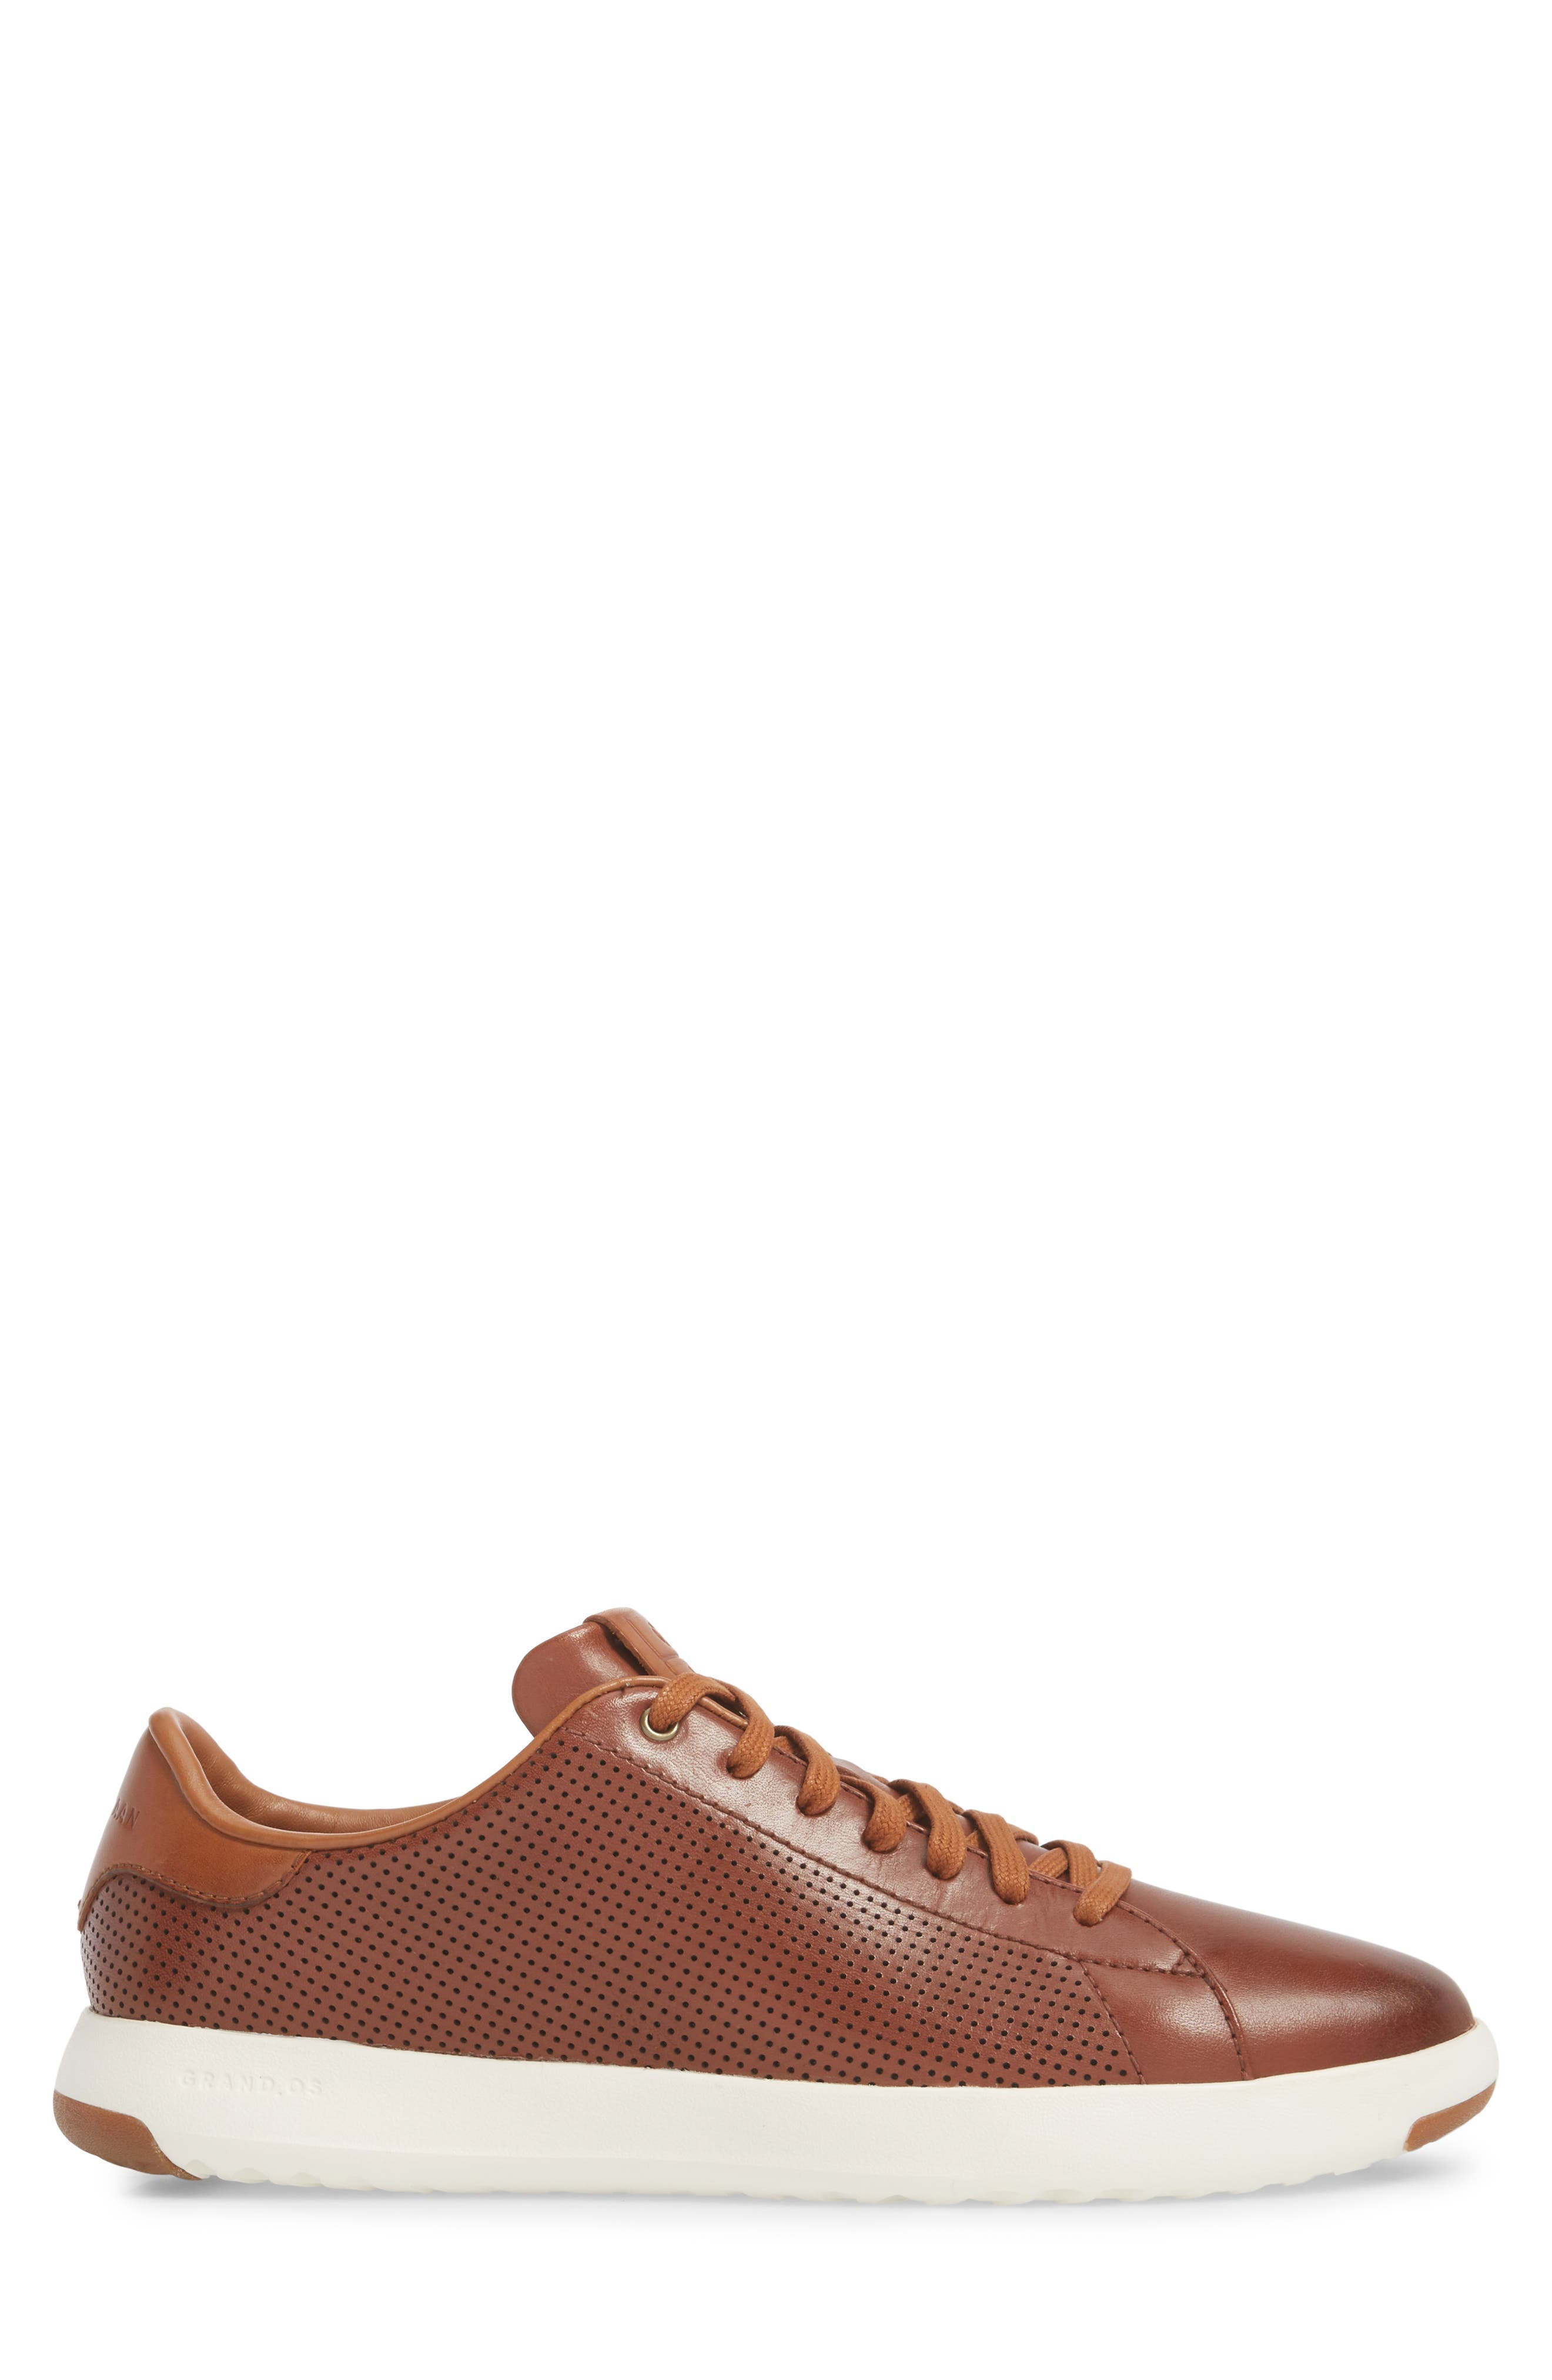 GrandPrø Perforated Low Top Sneaker,                             Alternate thumbnail 3, color,                             WOODBURY LEATHER